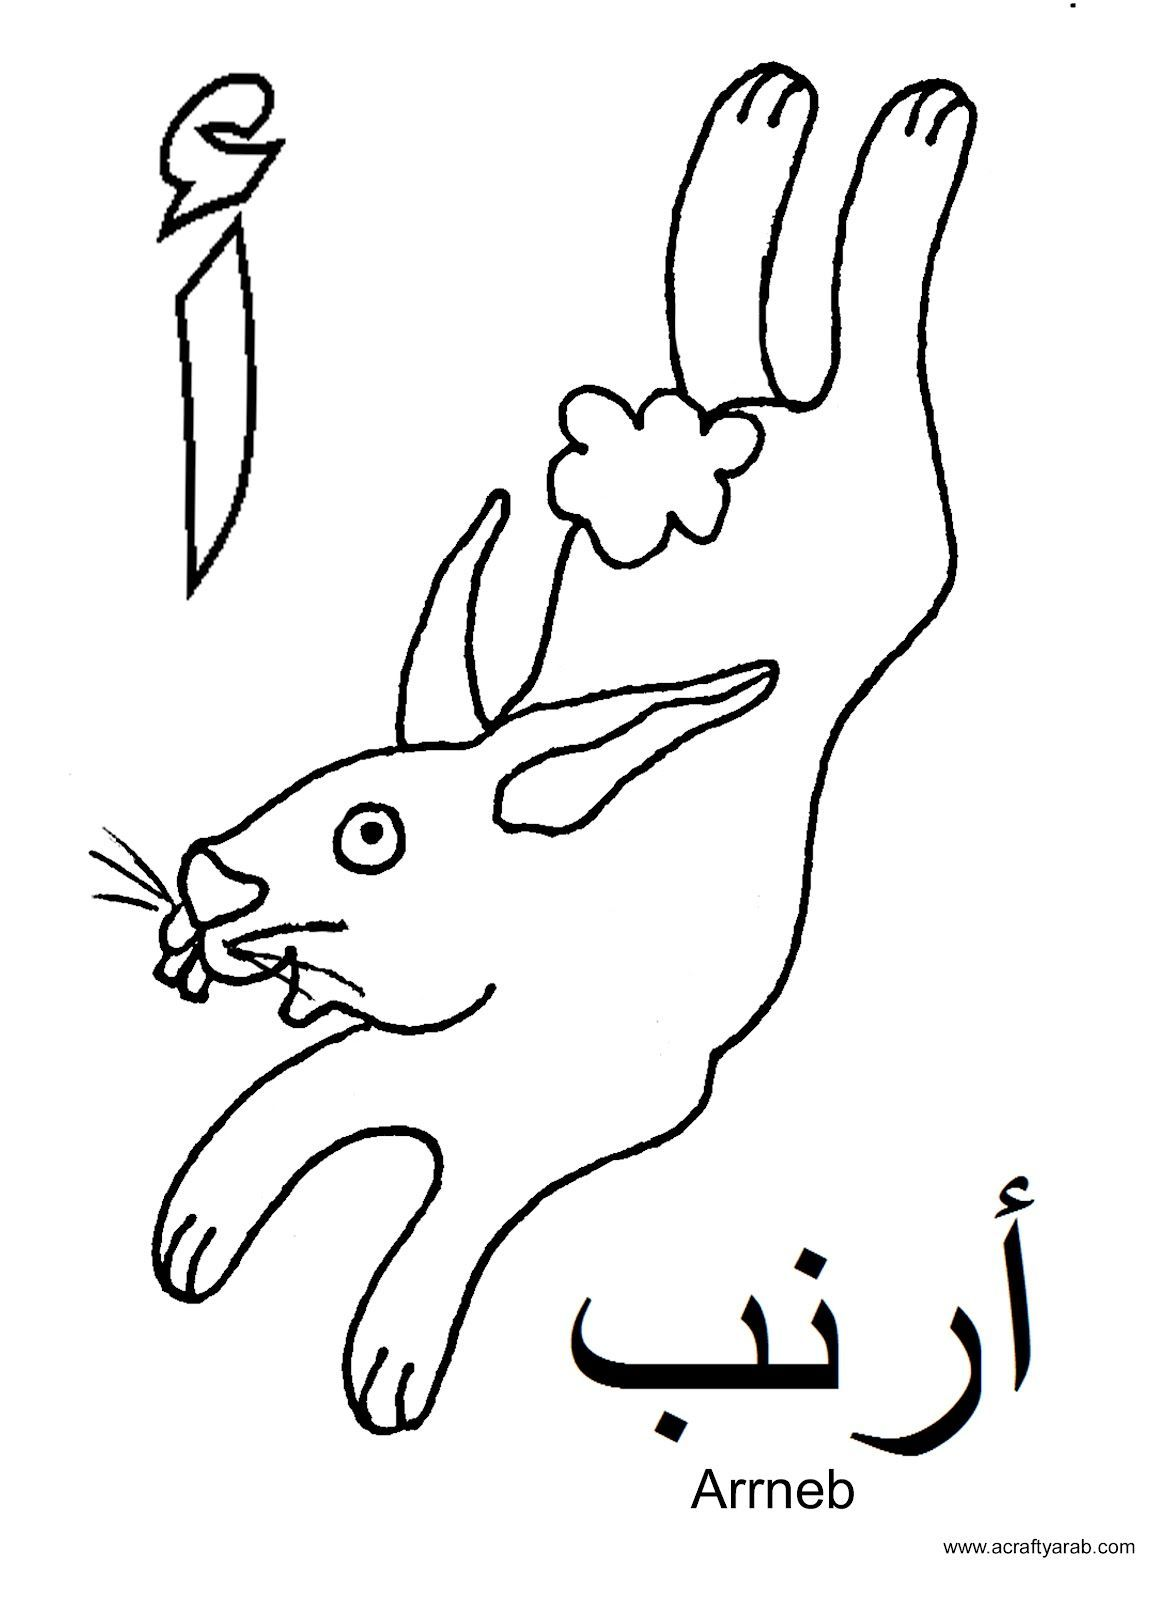 A Crafty Arab Arabic Alphabet Coloring Pages If Is